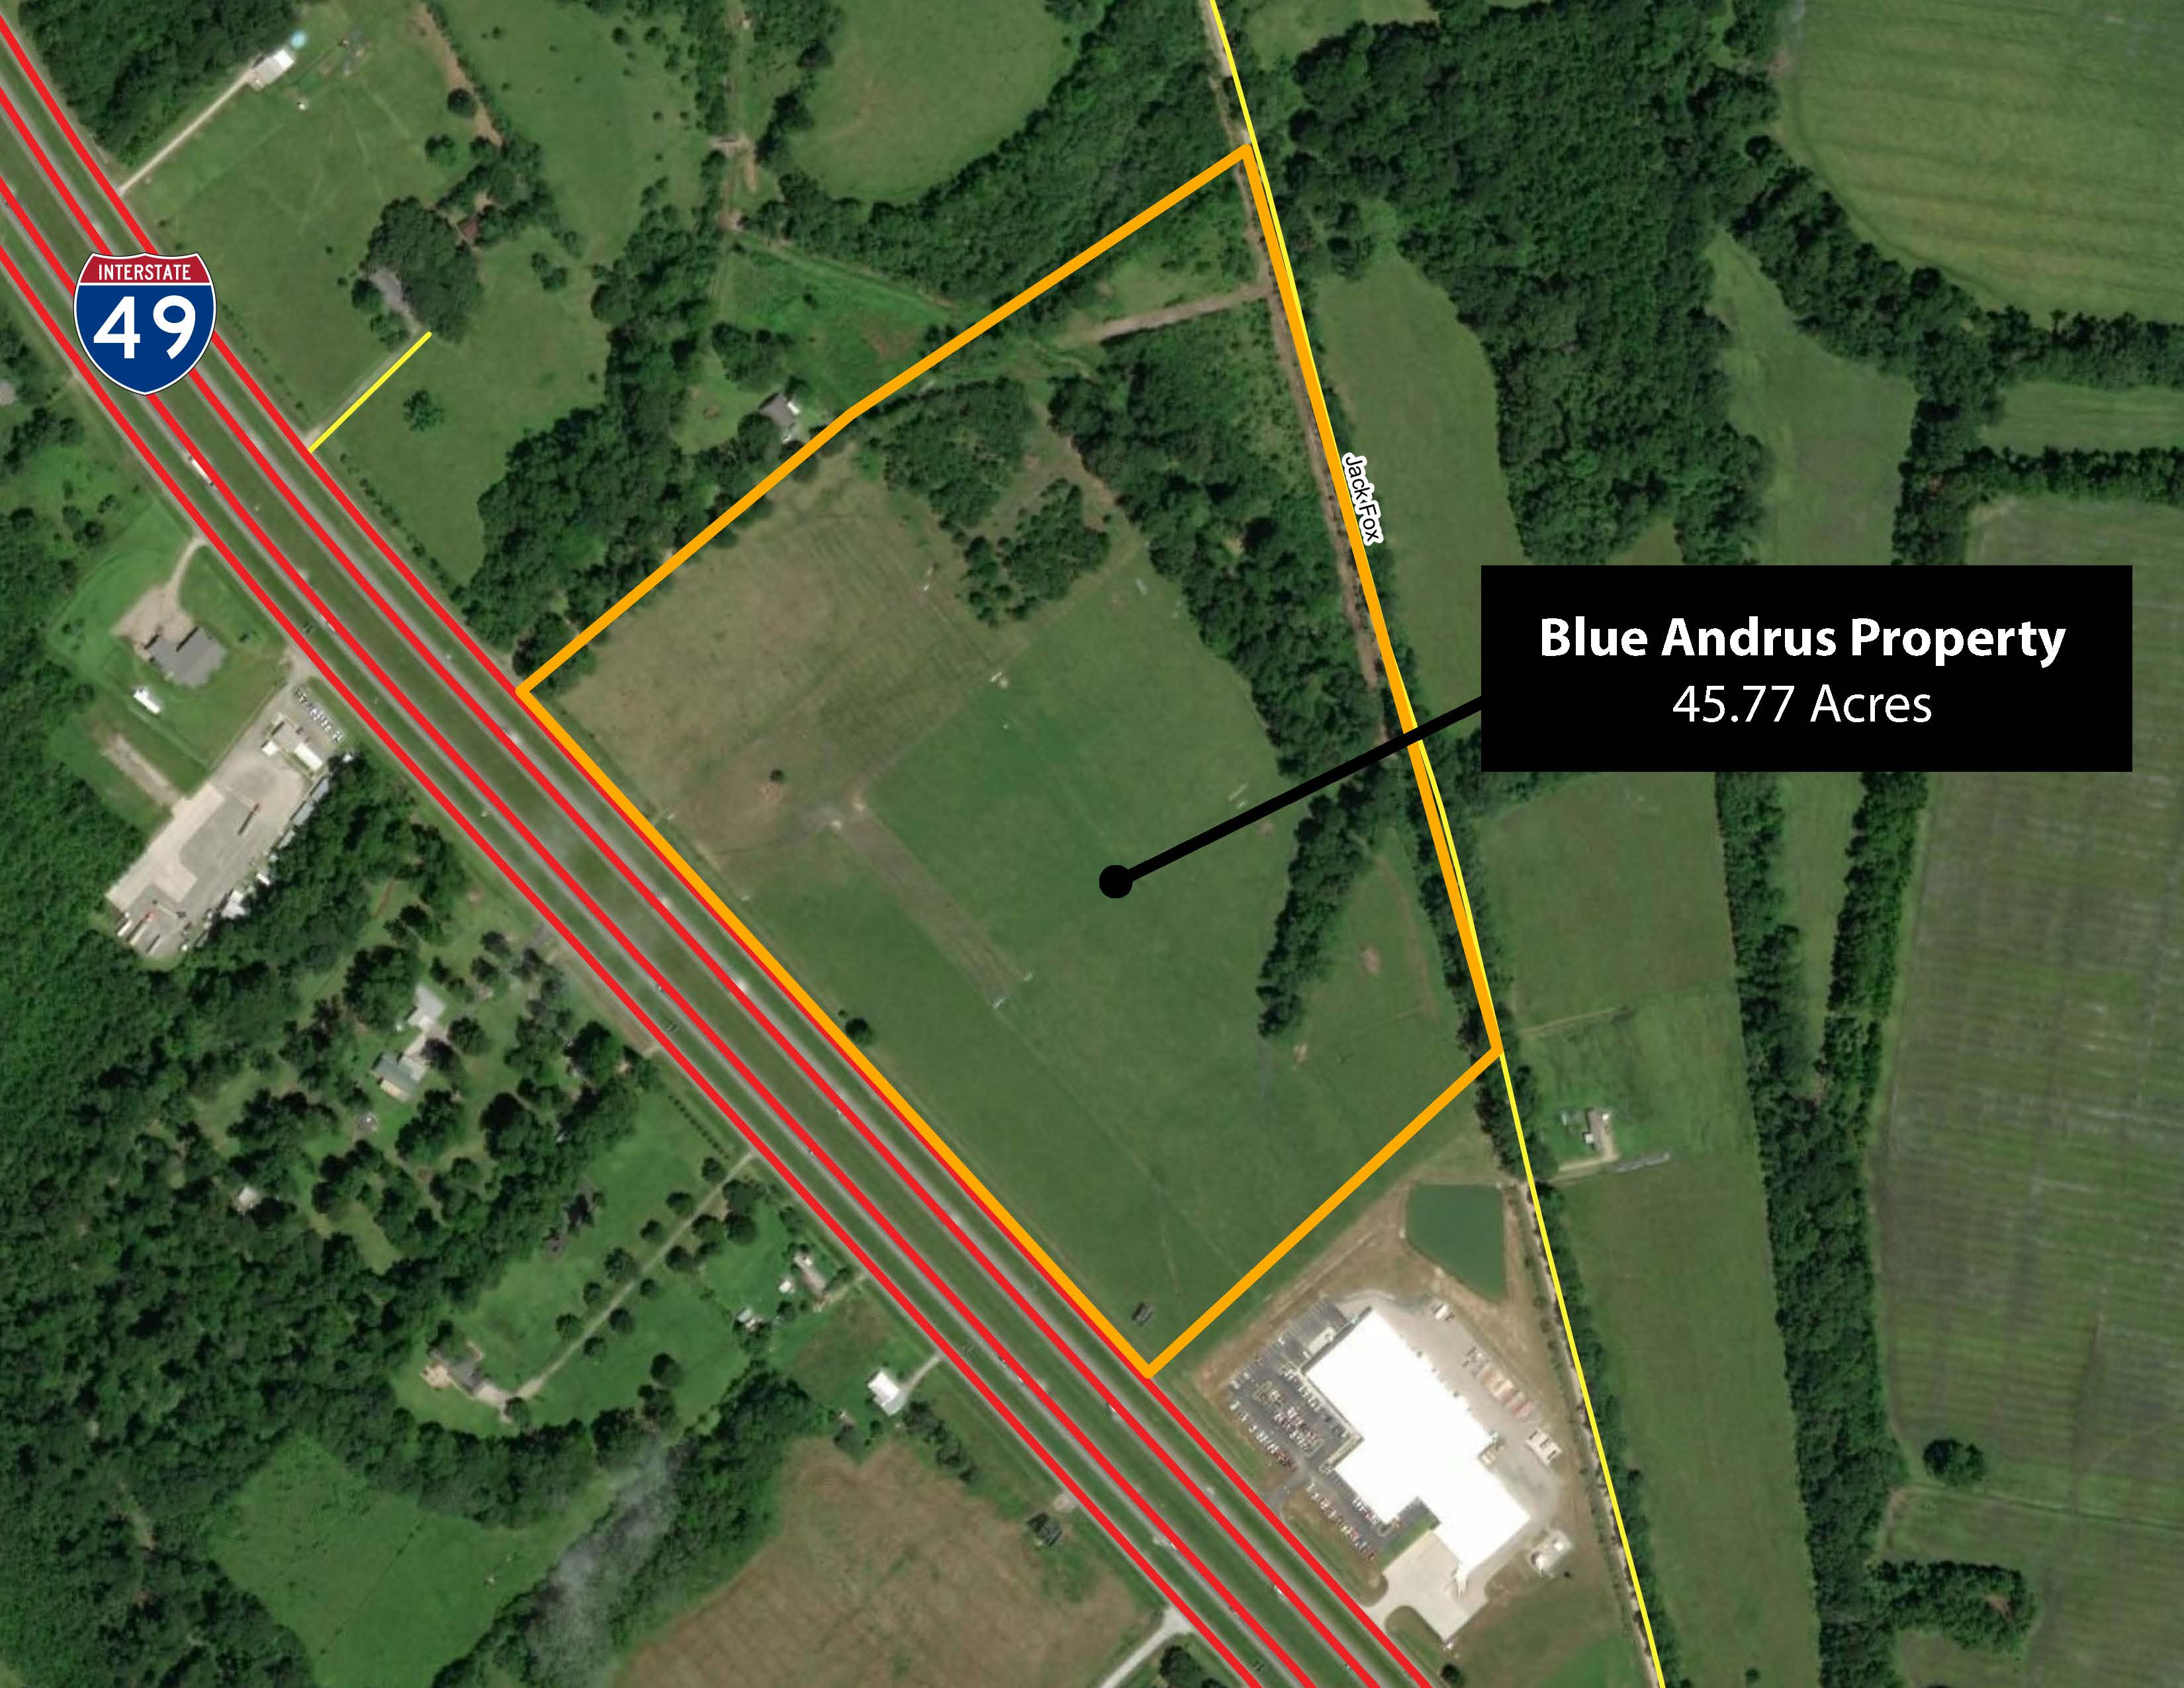 Blue Andrus Property